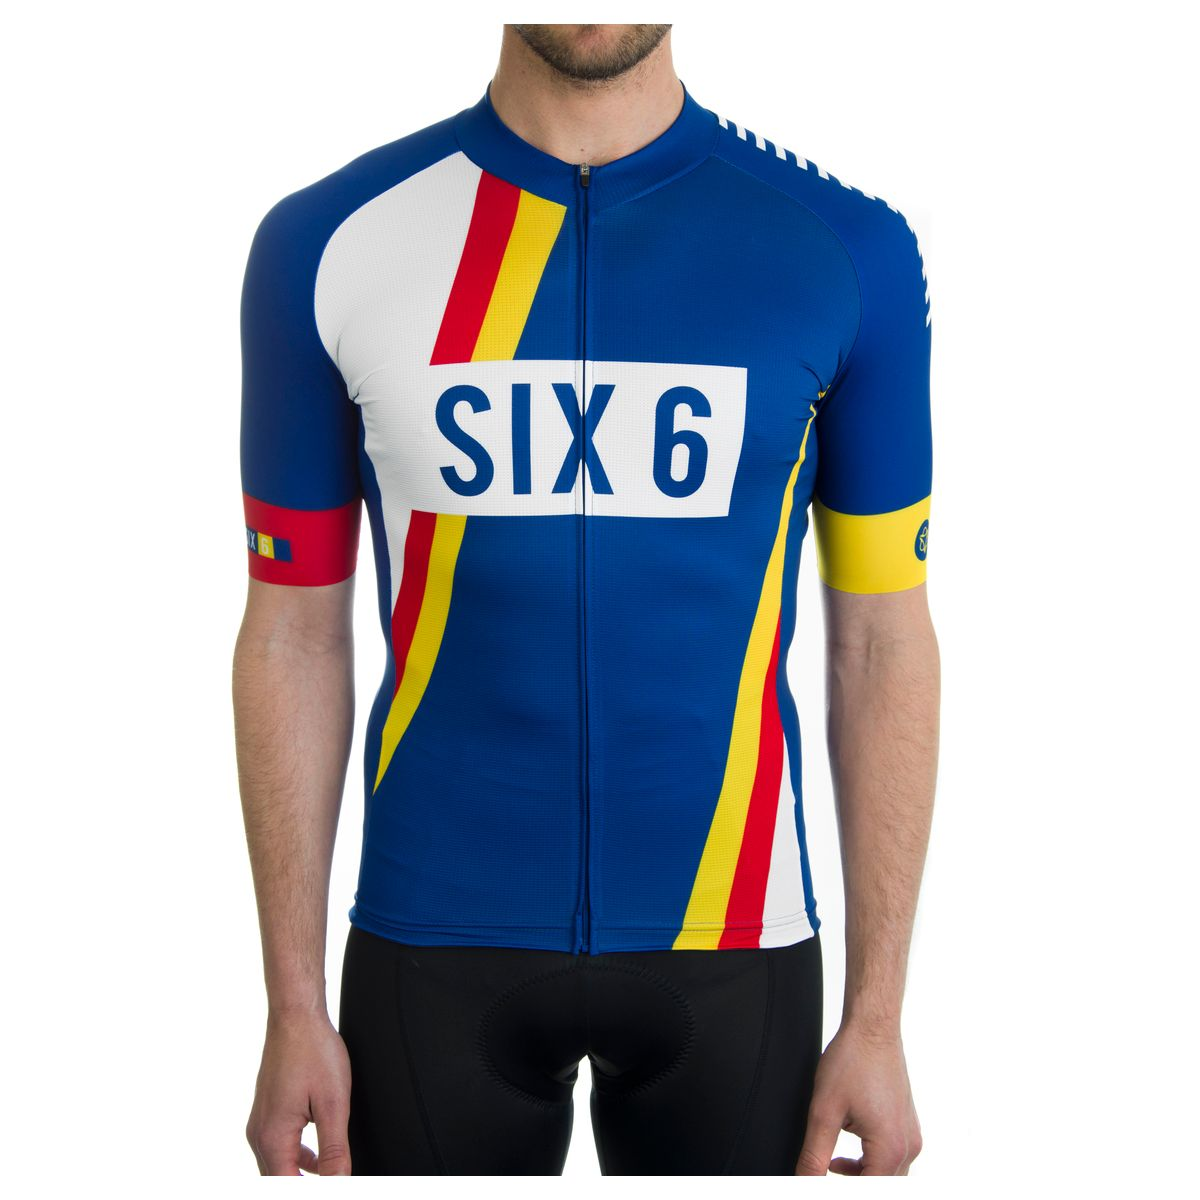 PNSC Jersey SS Six6 Men fit example